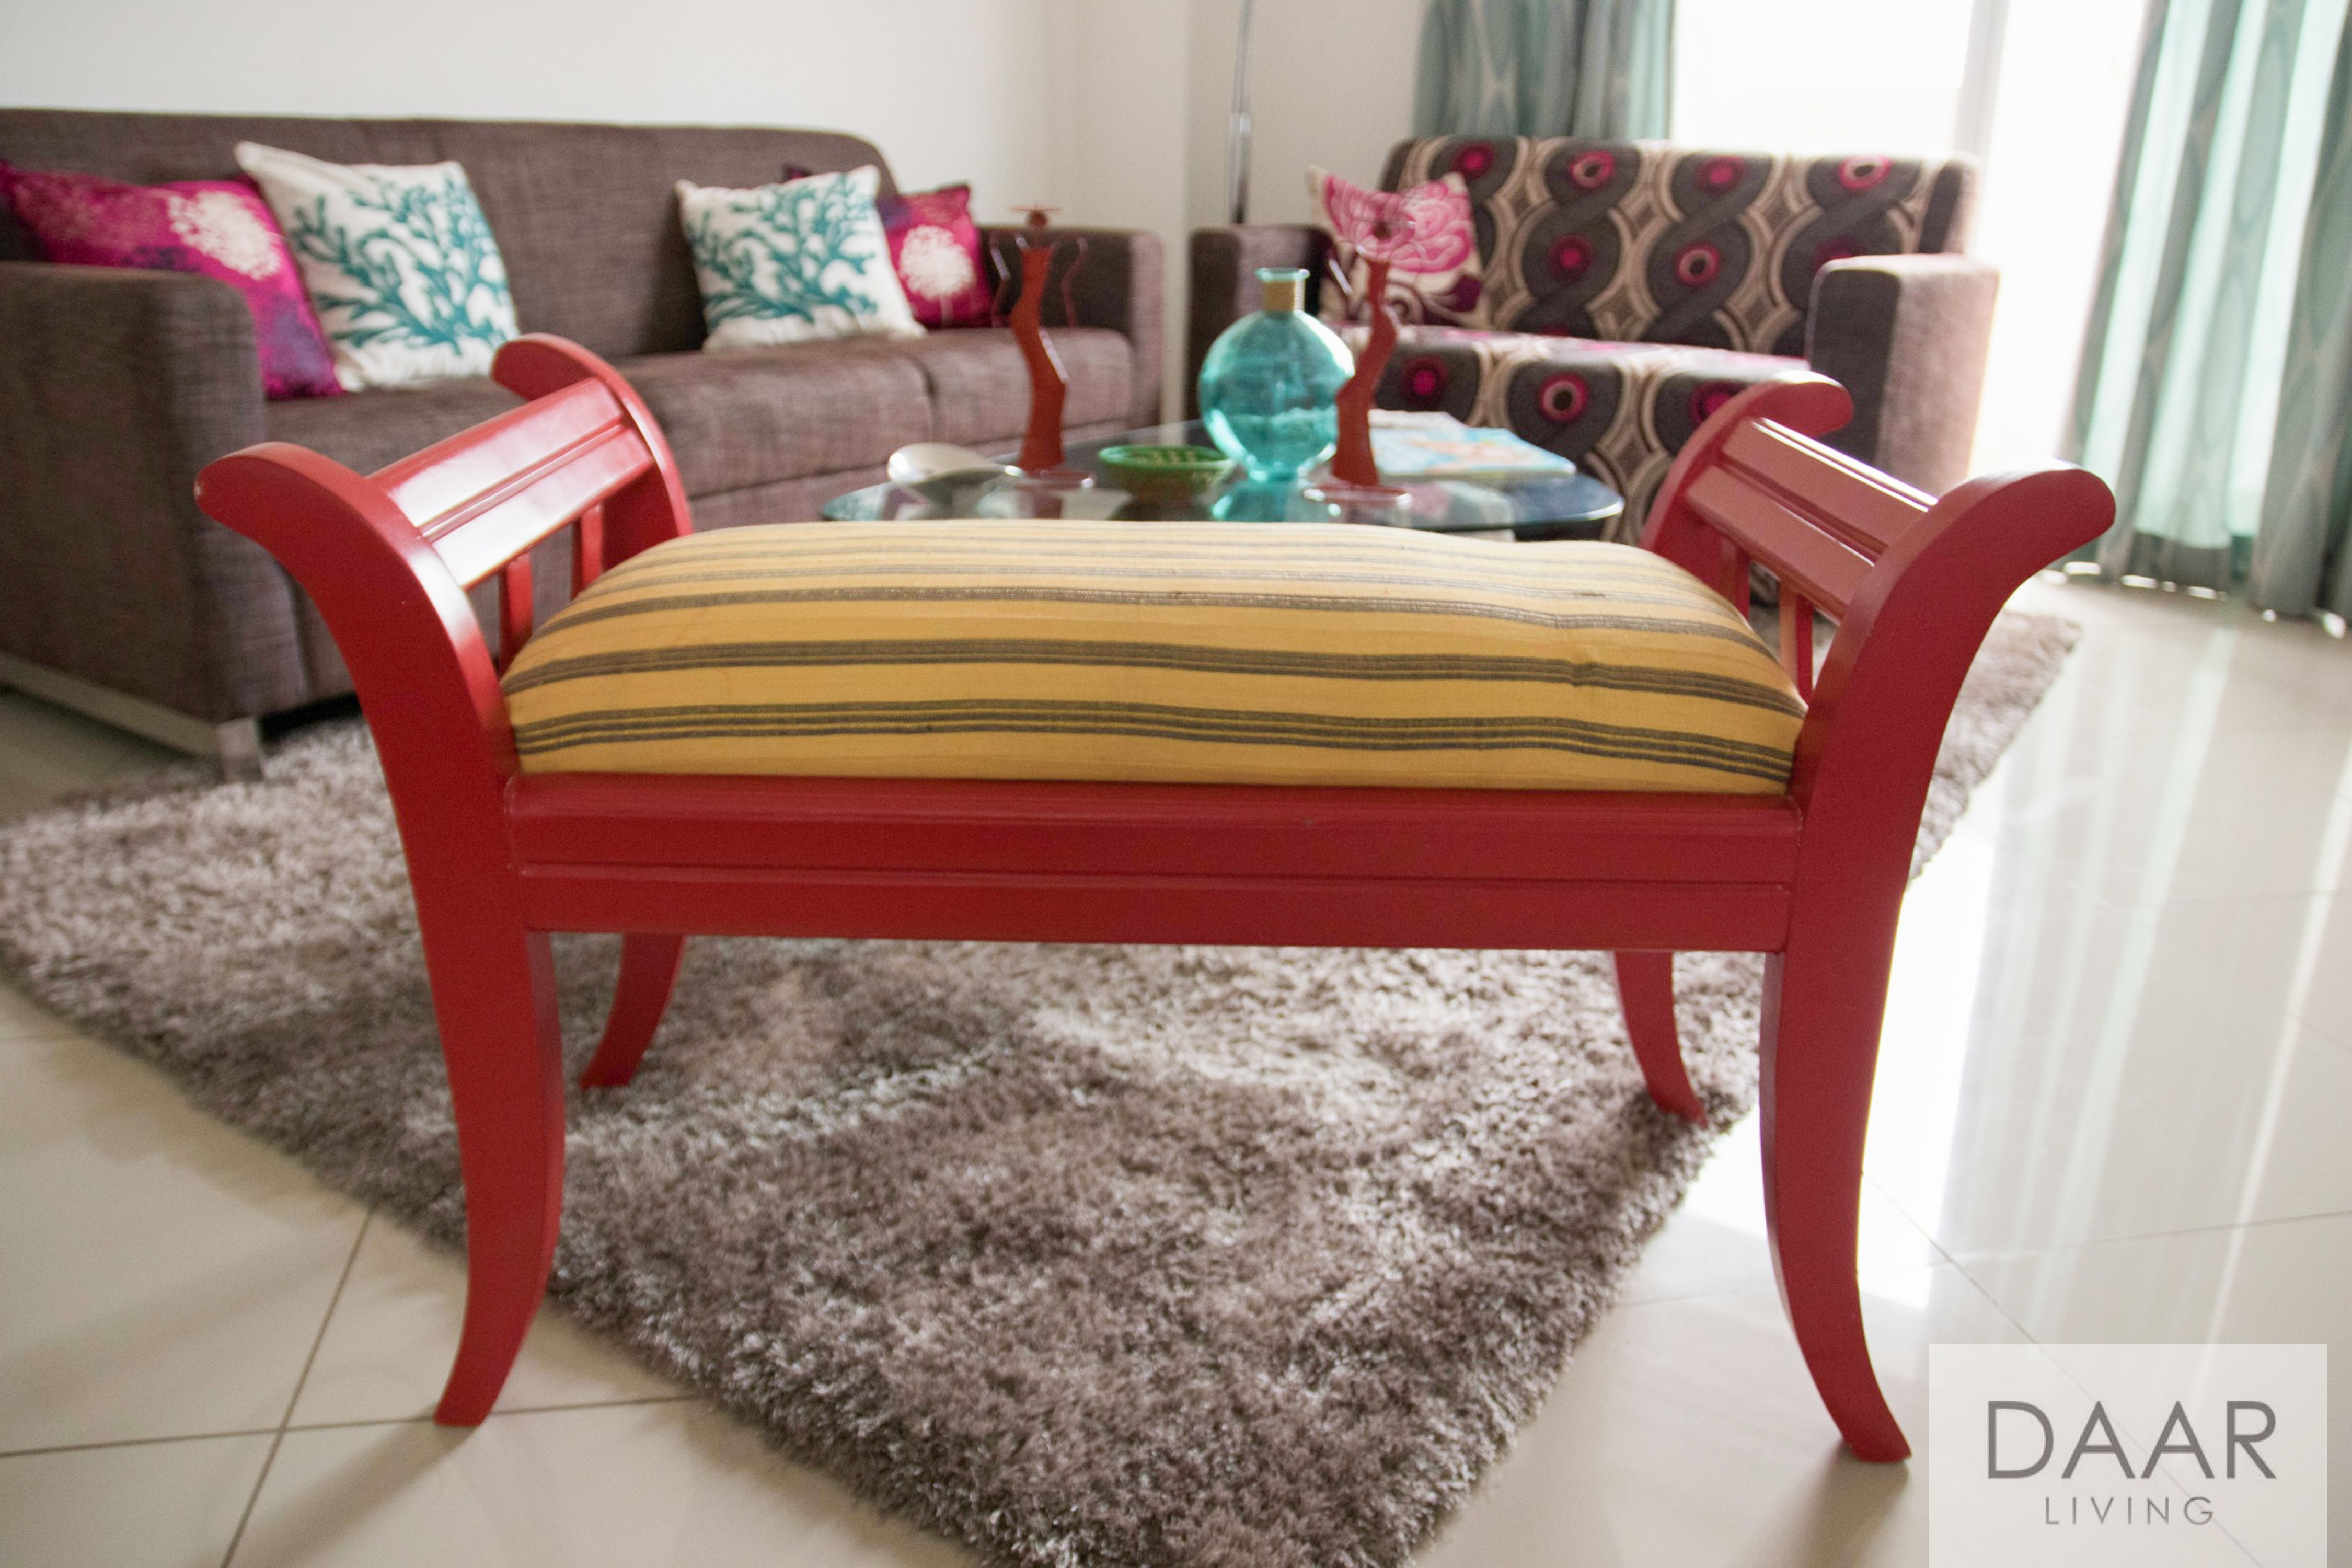 Daar Living Aso Oke Love Seat Interior Styling Interior Love Seat